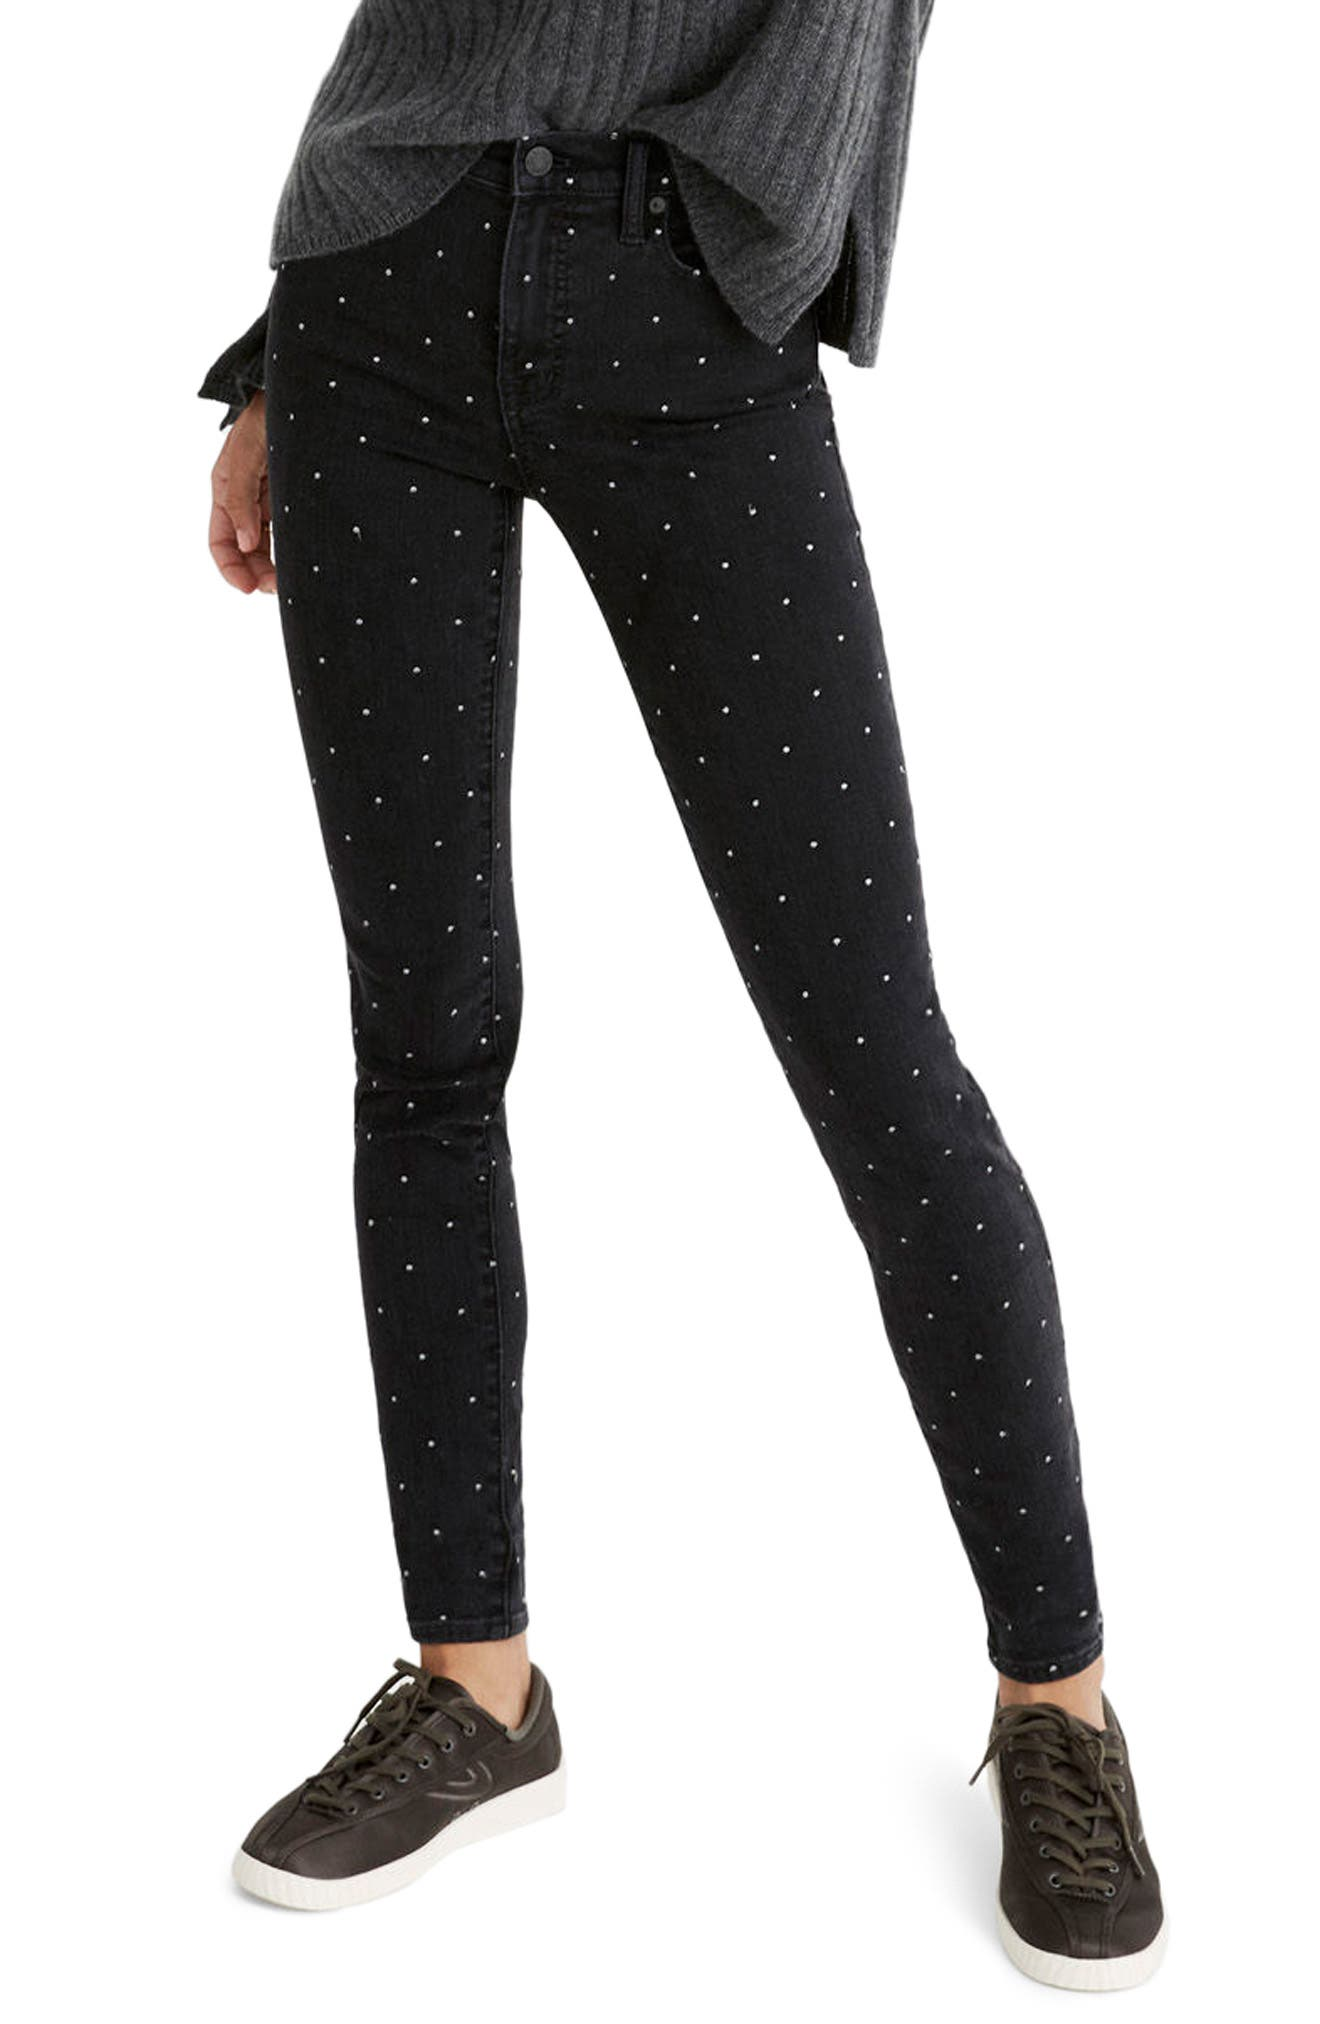 Alternate Image 1 Selected - Madewell 9-Inch Metallic Dot Skinny Jeans (Glendale)